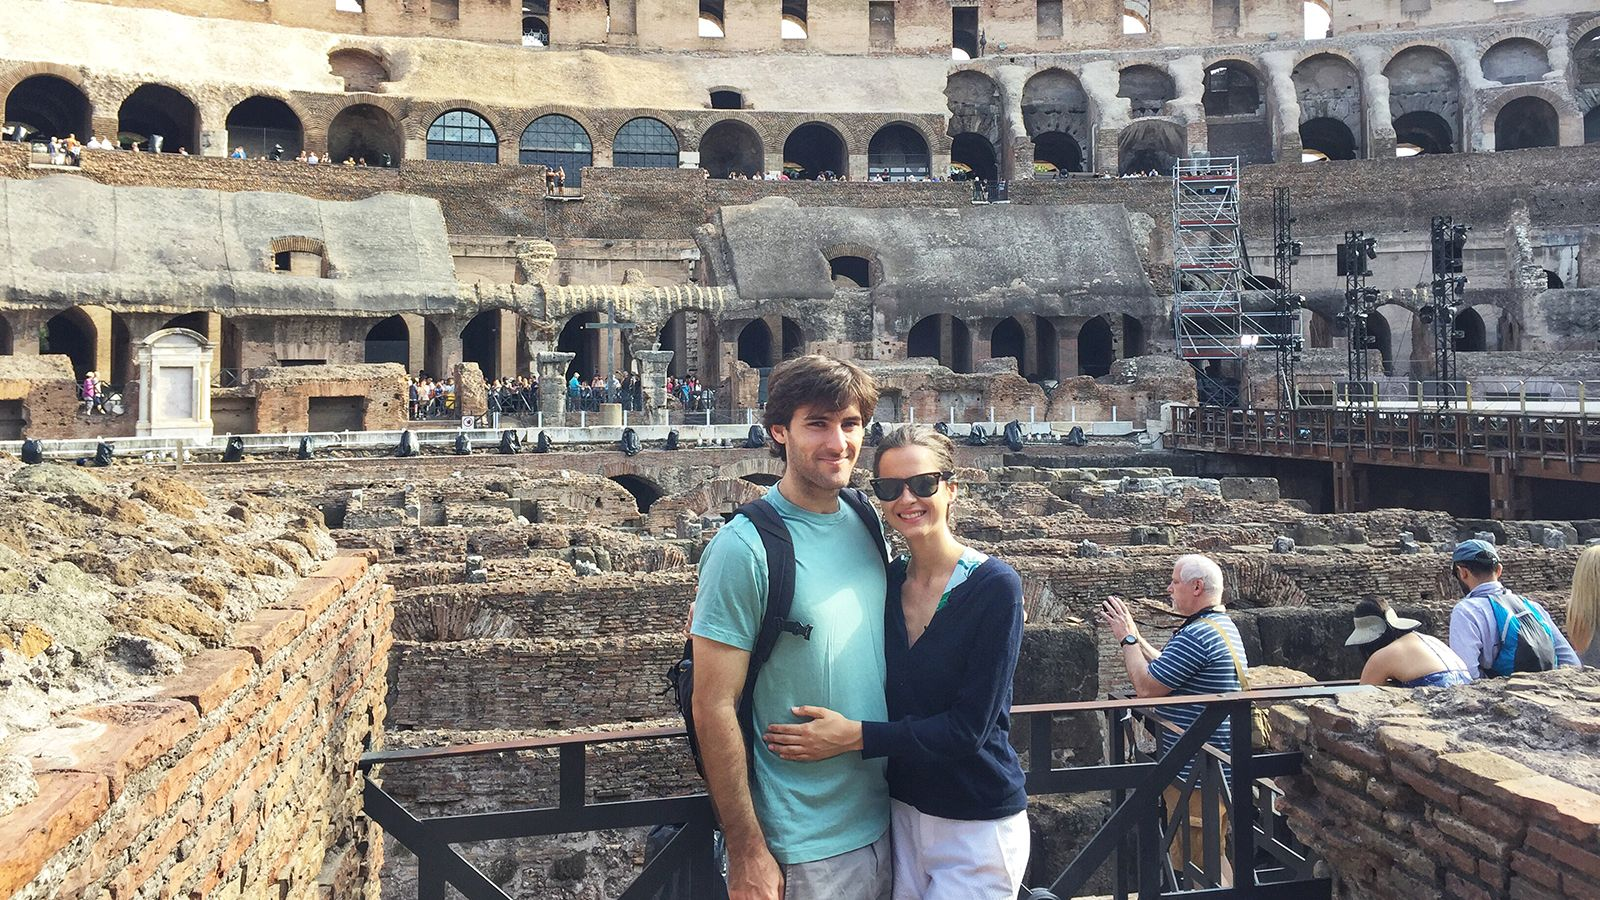 The Stress Free Way This Engaged Couple Combined Finances